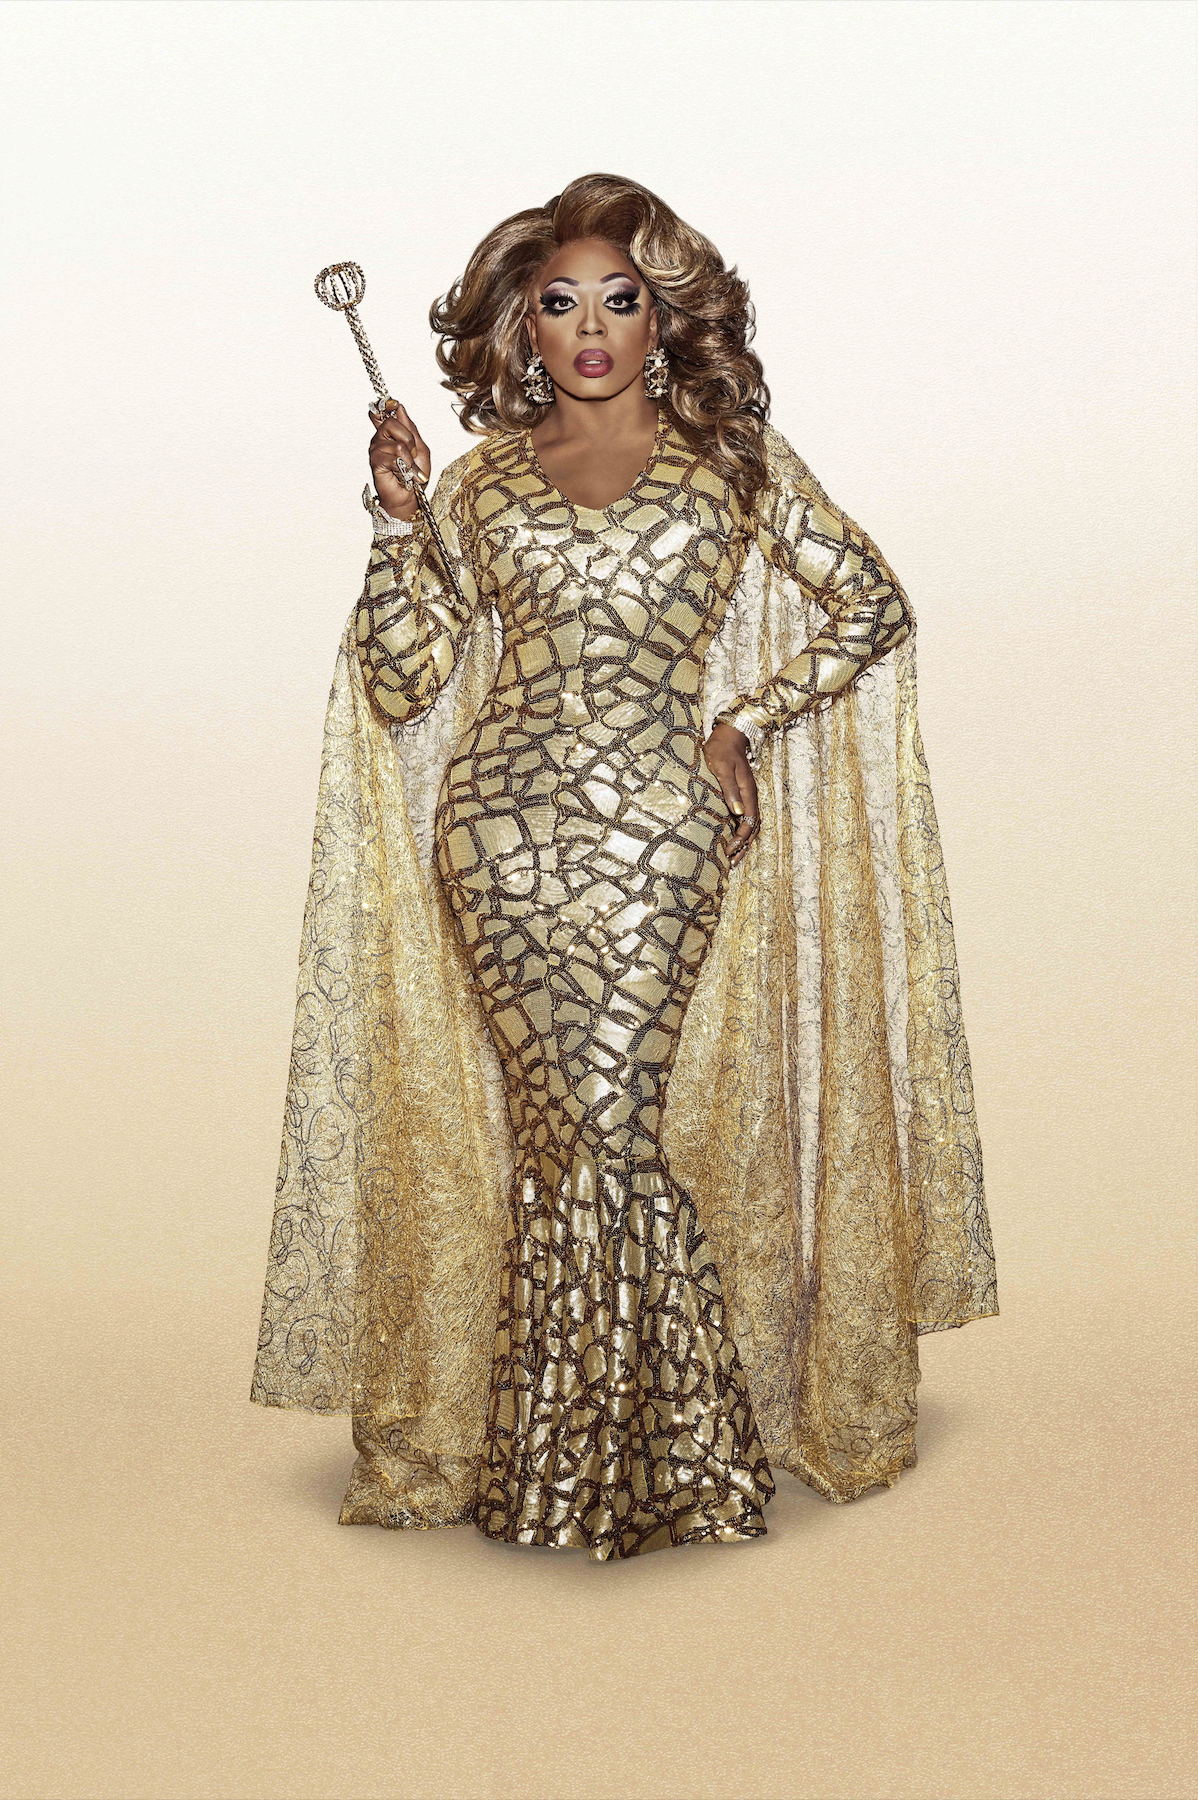 Bebe Zahara Benet Rupauls Drag Race Wiki Fandom Powered By Wikia